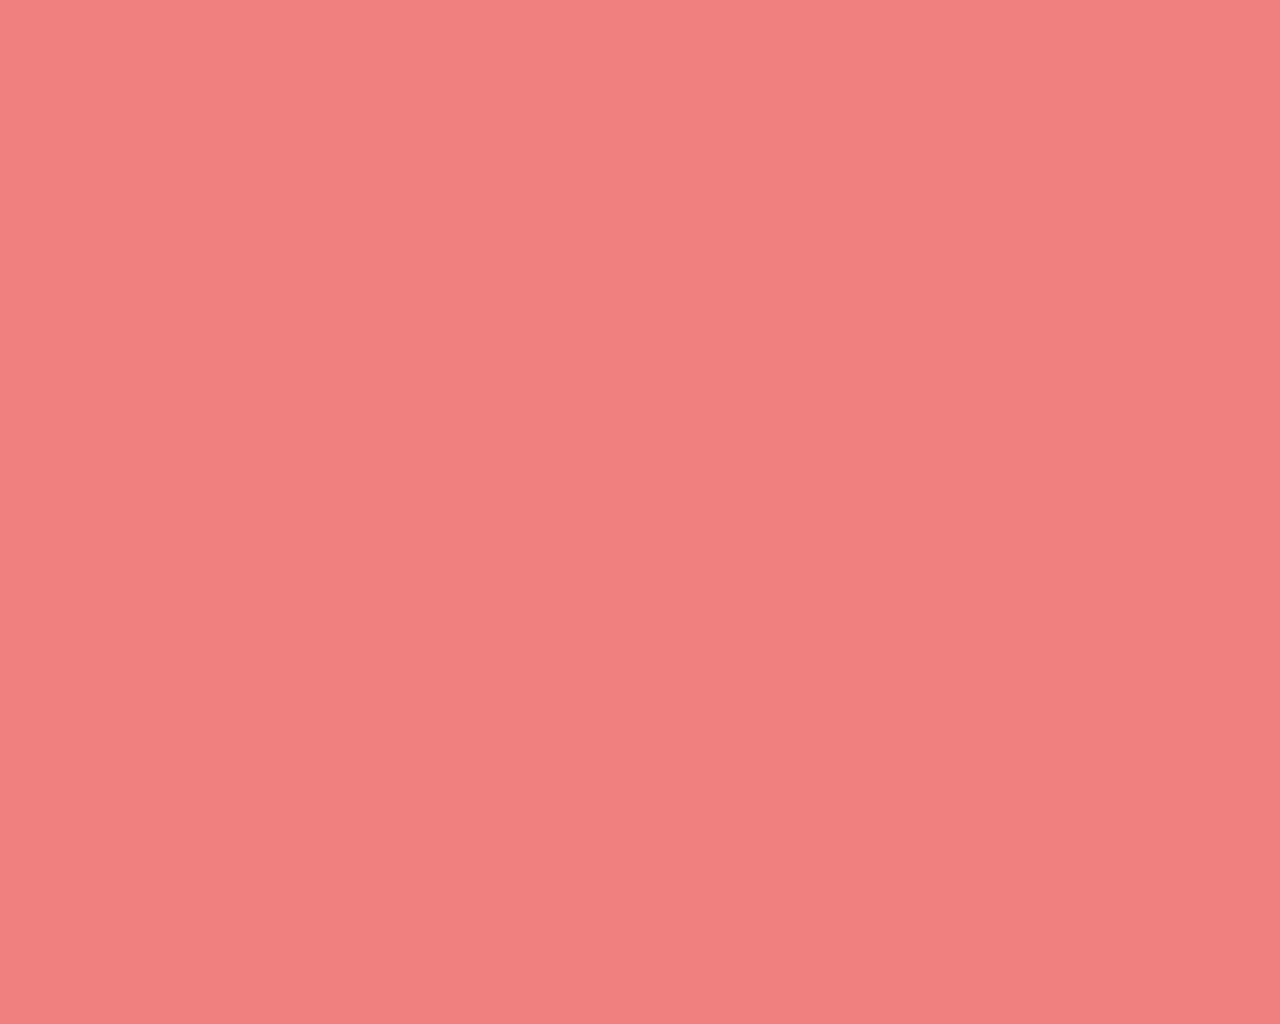 Coral Pink Color Background Peach Color Background Salmon Color 1280x1024